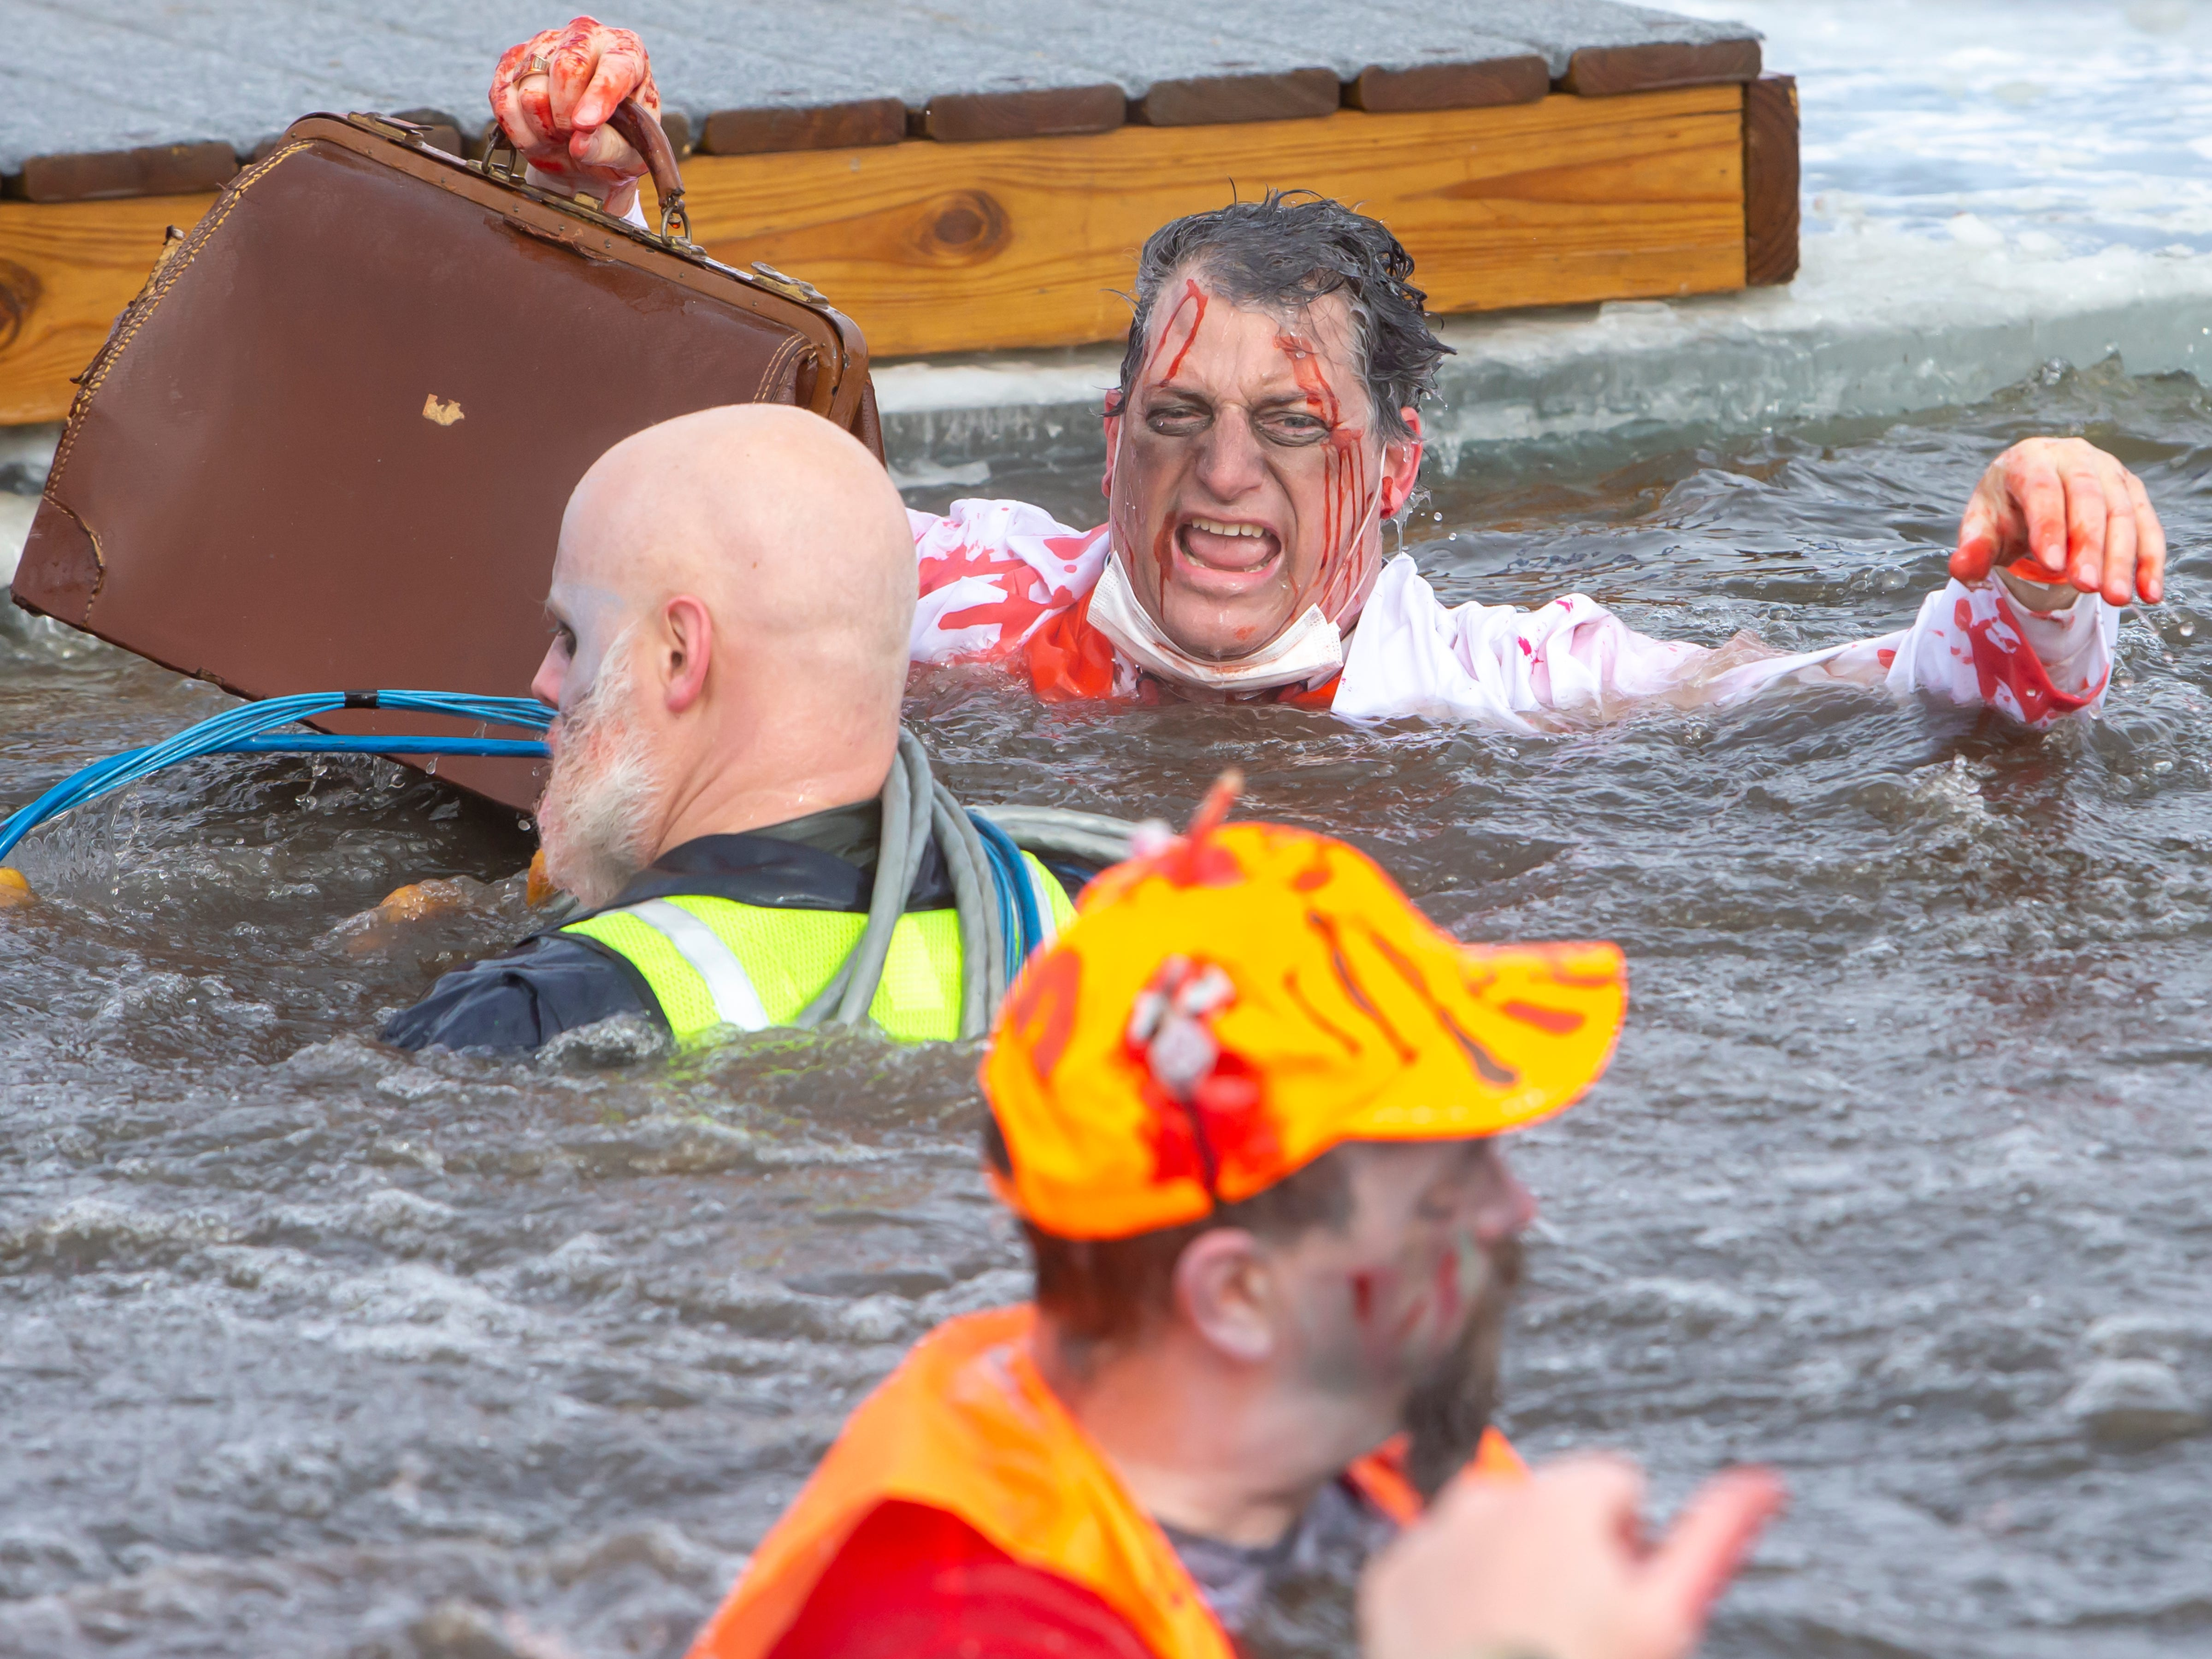 People come dressed in costume participating in the Special Olympics Wisconsin Polar Plunge in Oshkosh, Wis., on Saturday, February 16, 2019, at Miller's Bay in Menominee Park.